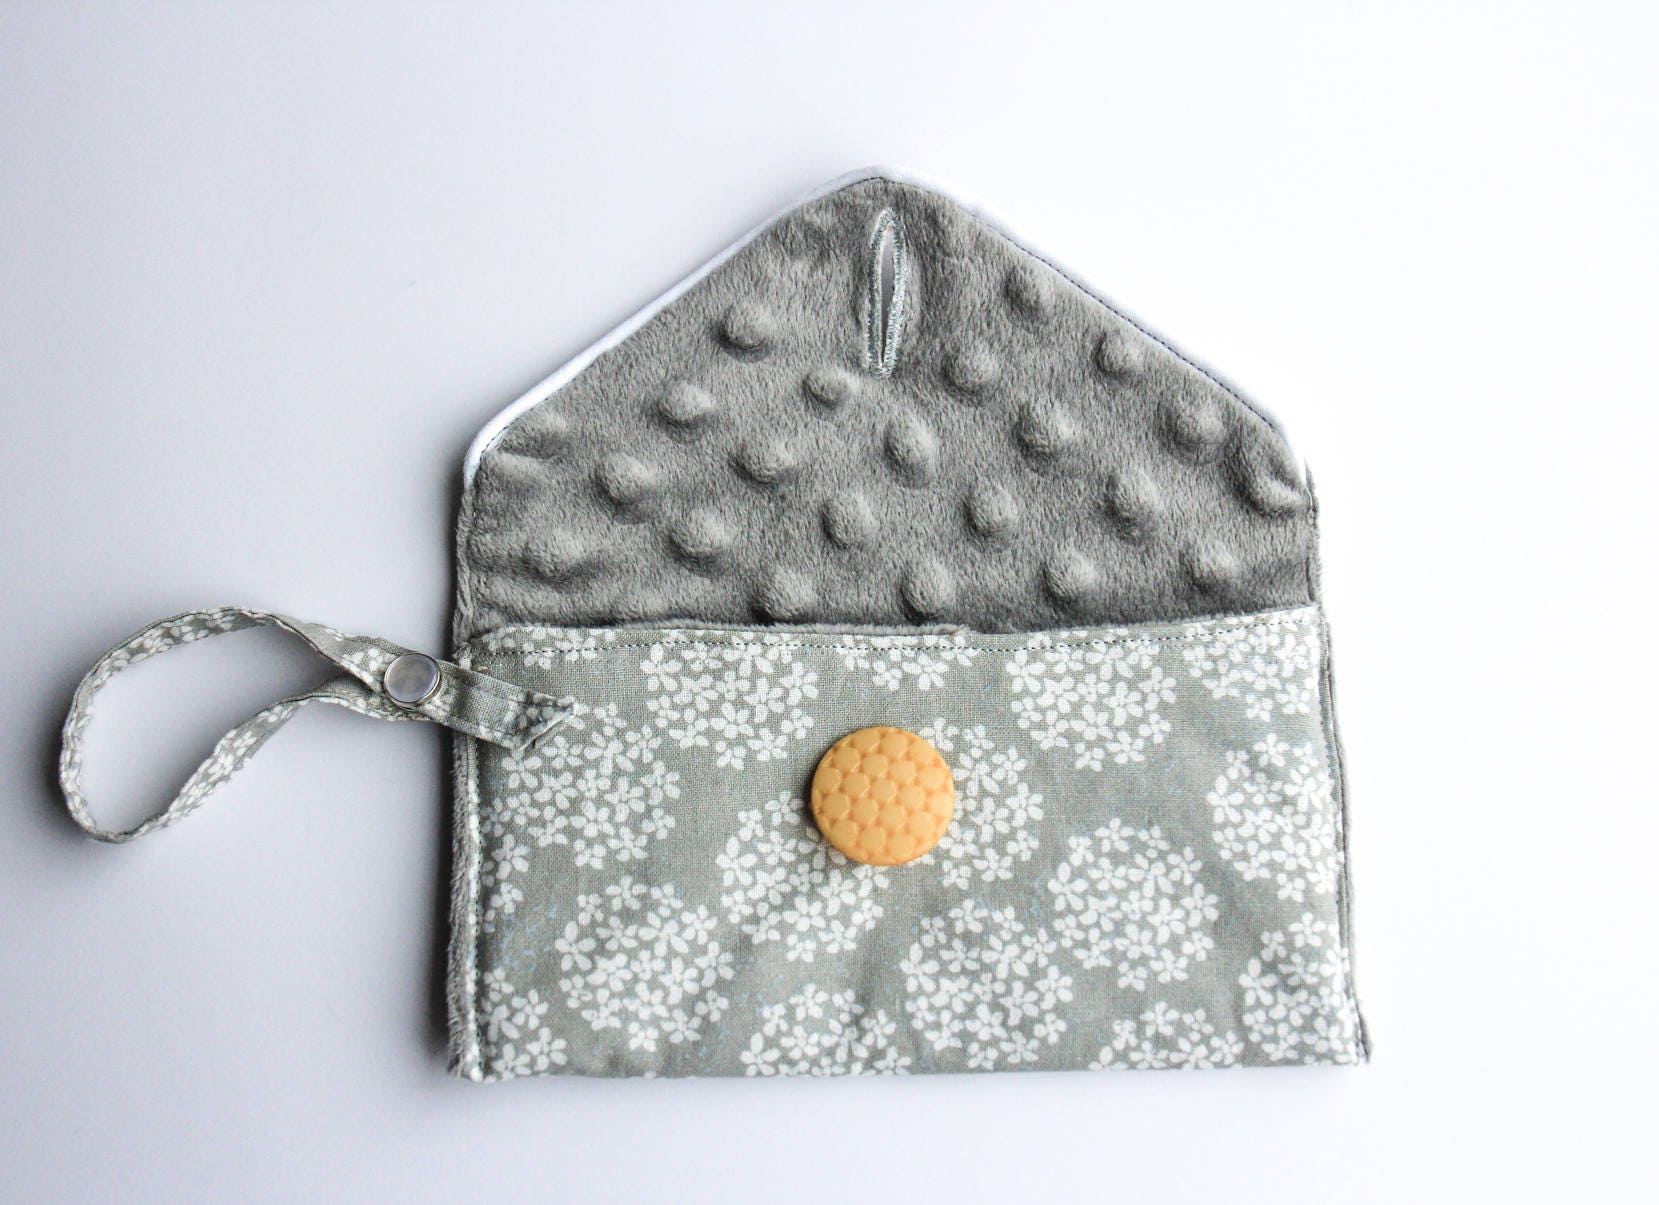 Gray Clutch Cute Retro Phone Bag Gift For Her Under 20 Mom Ideas Bridesmaid Accessories Birthday